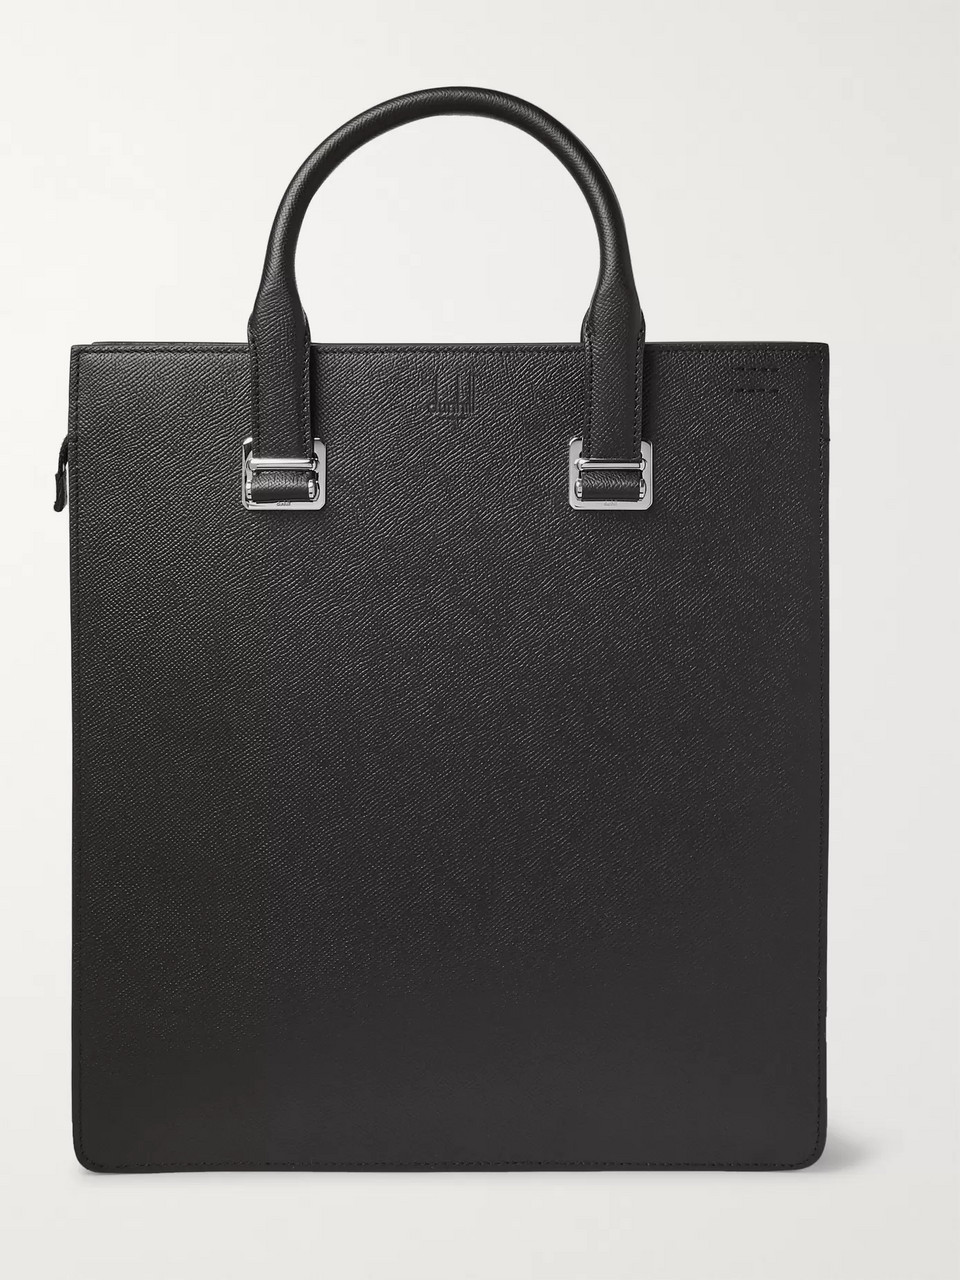 Dunhill Cadogan Pebble-Grain Leather Tote Bag